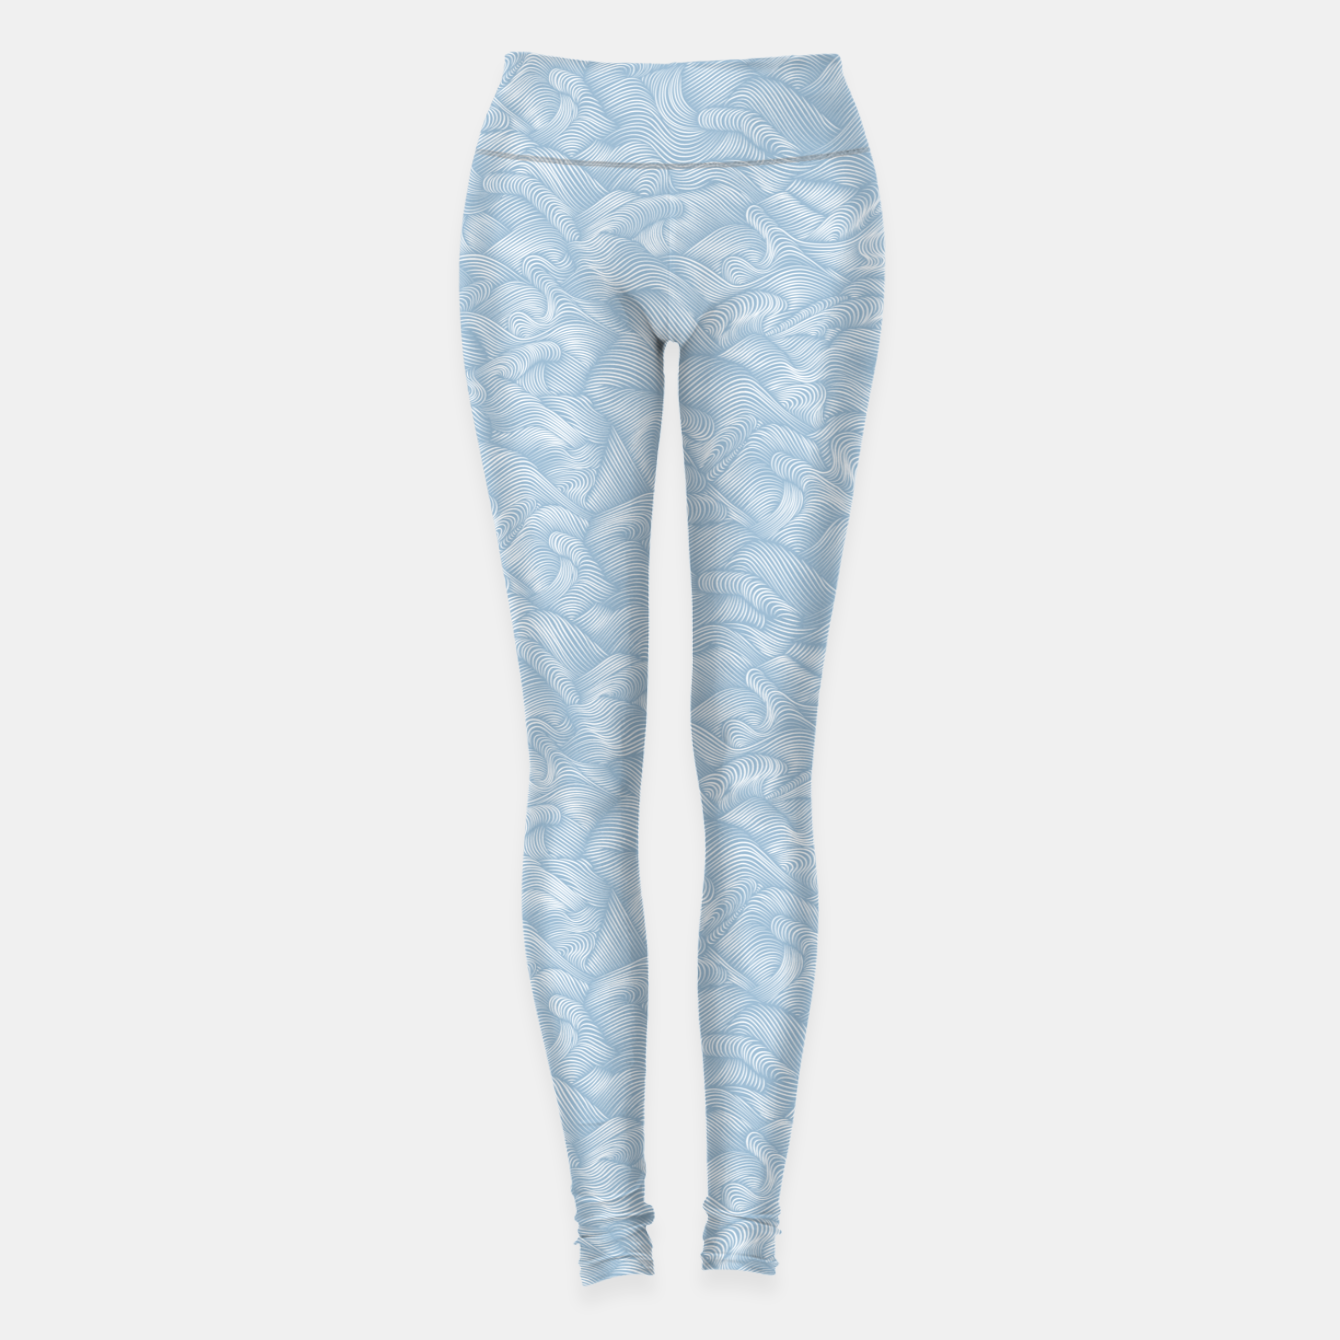 Foto Silky Waves of the Boundless Blue Sea Leggings - Live Heroes